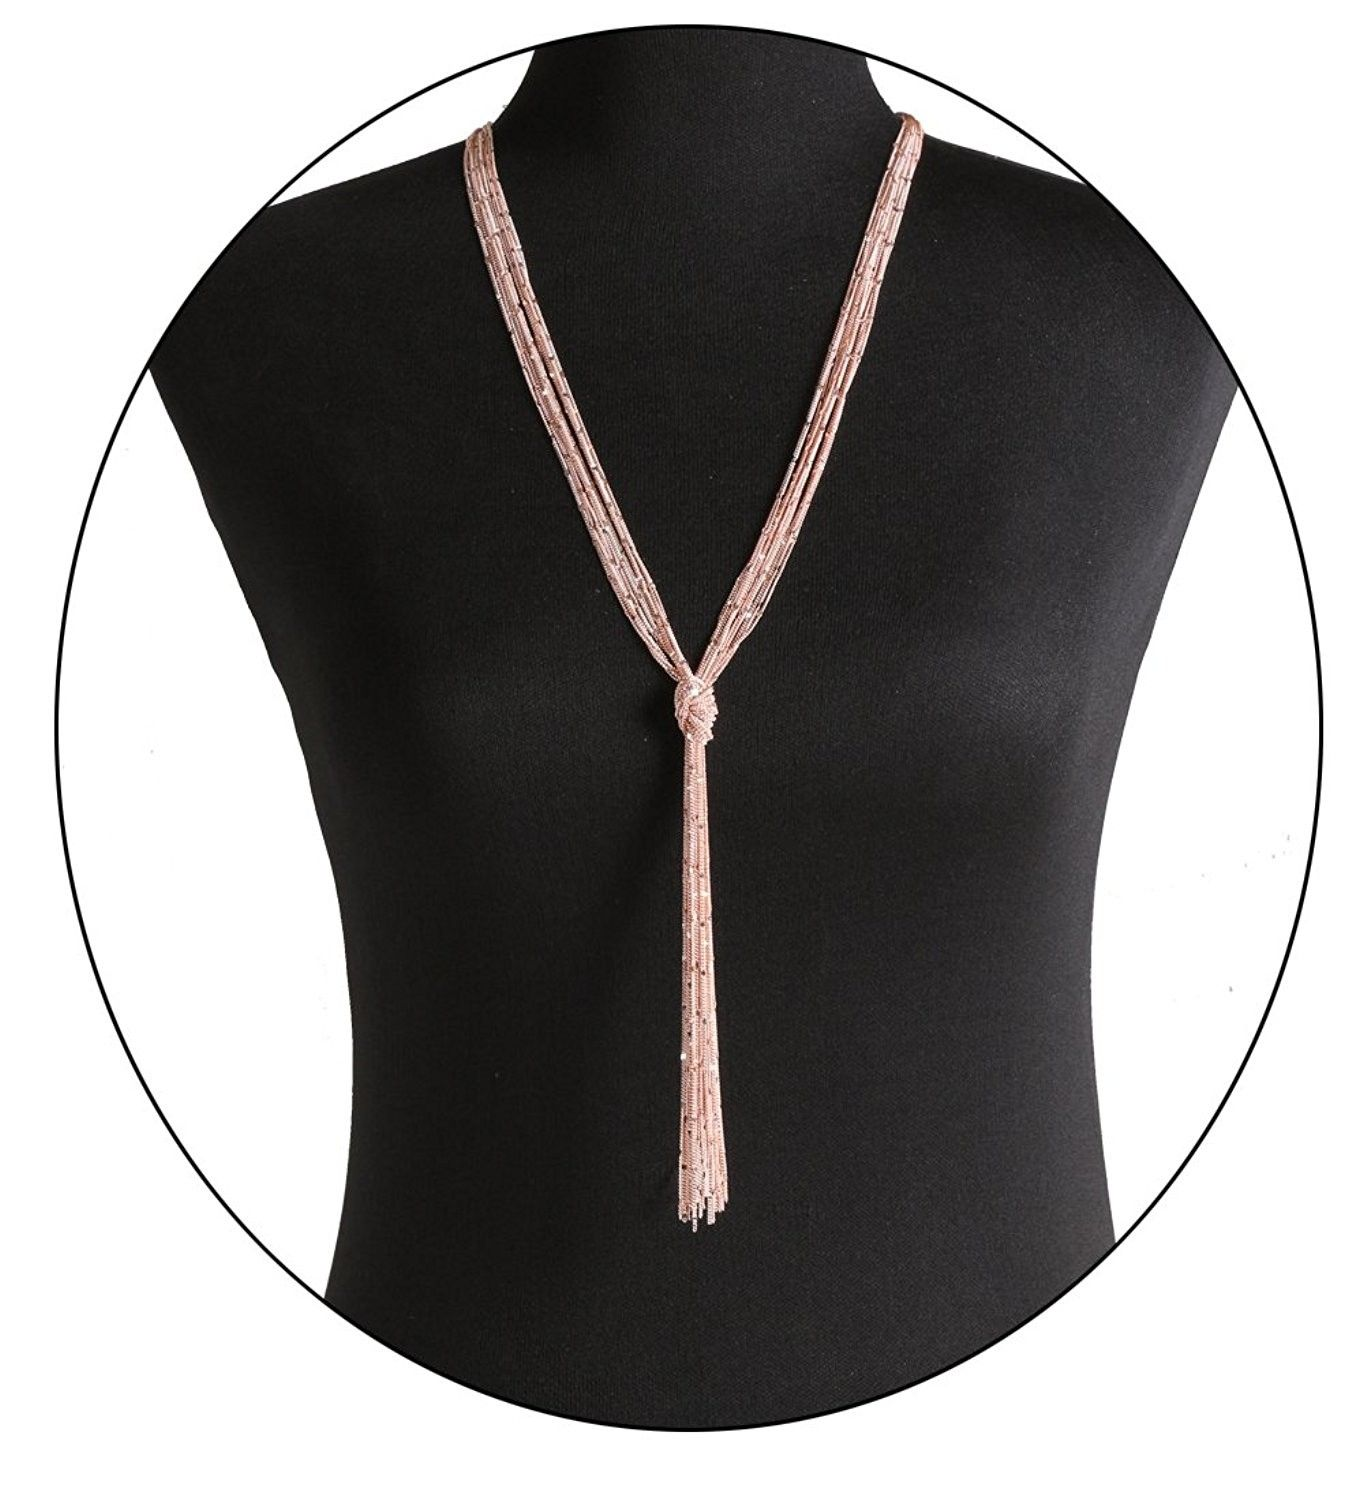 e77f8379f323a Women Multi Chain Necklace Waterfall Multi Strand Jewel Chain Tassel  Necklace - knot Y necklace rose gold - CS1887R8LT5 - Necklaces